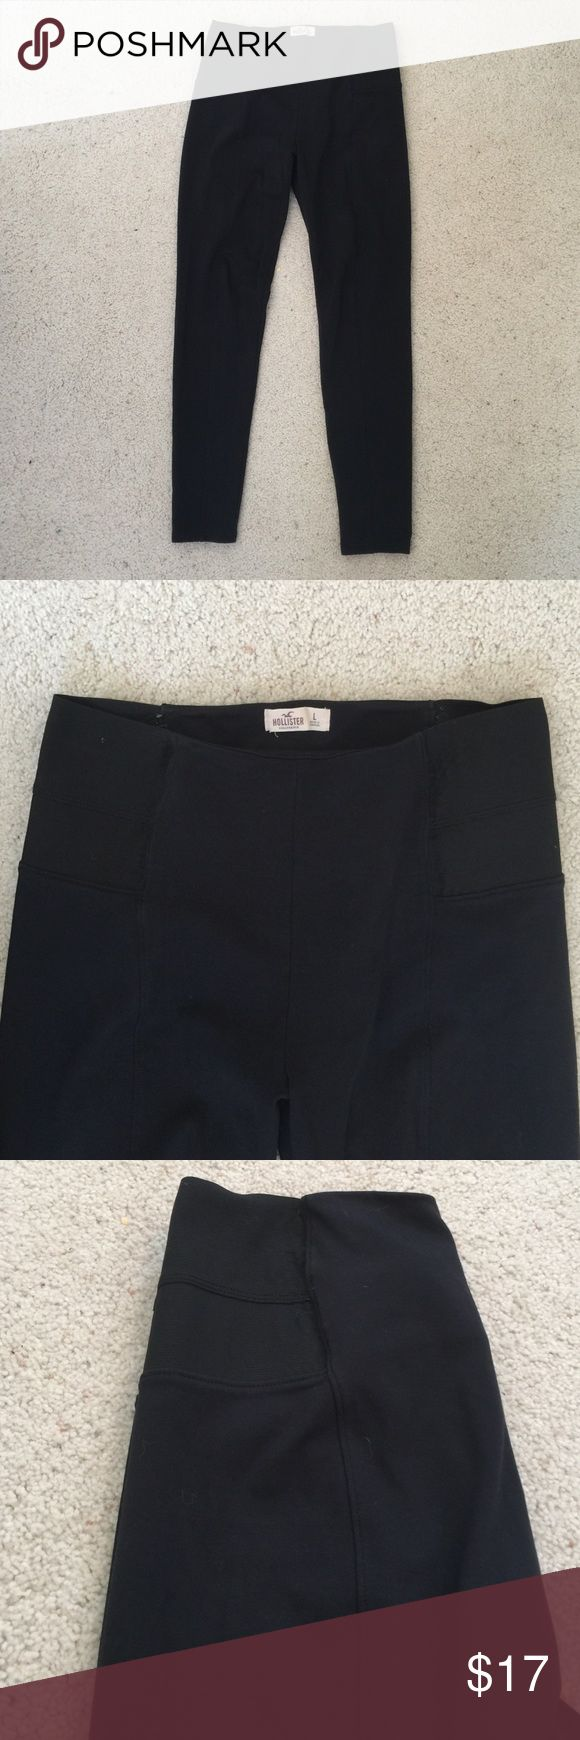 High waisted Hollister leggings in good condition High waisted leggings. There is a line on each leg in front and back. And an elastic band in the waist on each side. Only worn a couple of times Hollister Pants Leggings